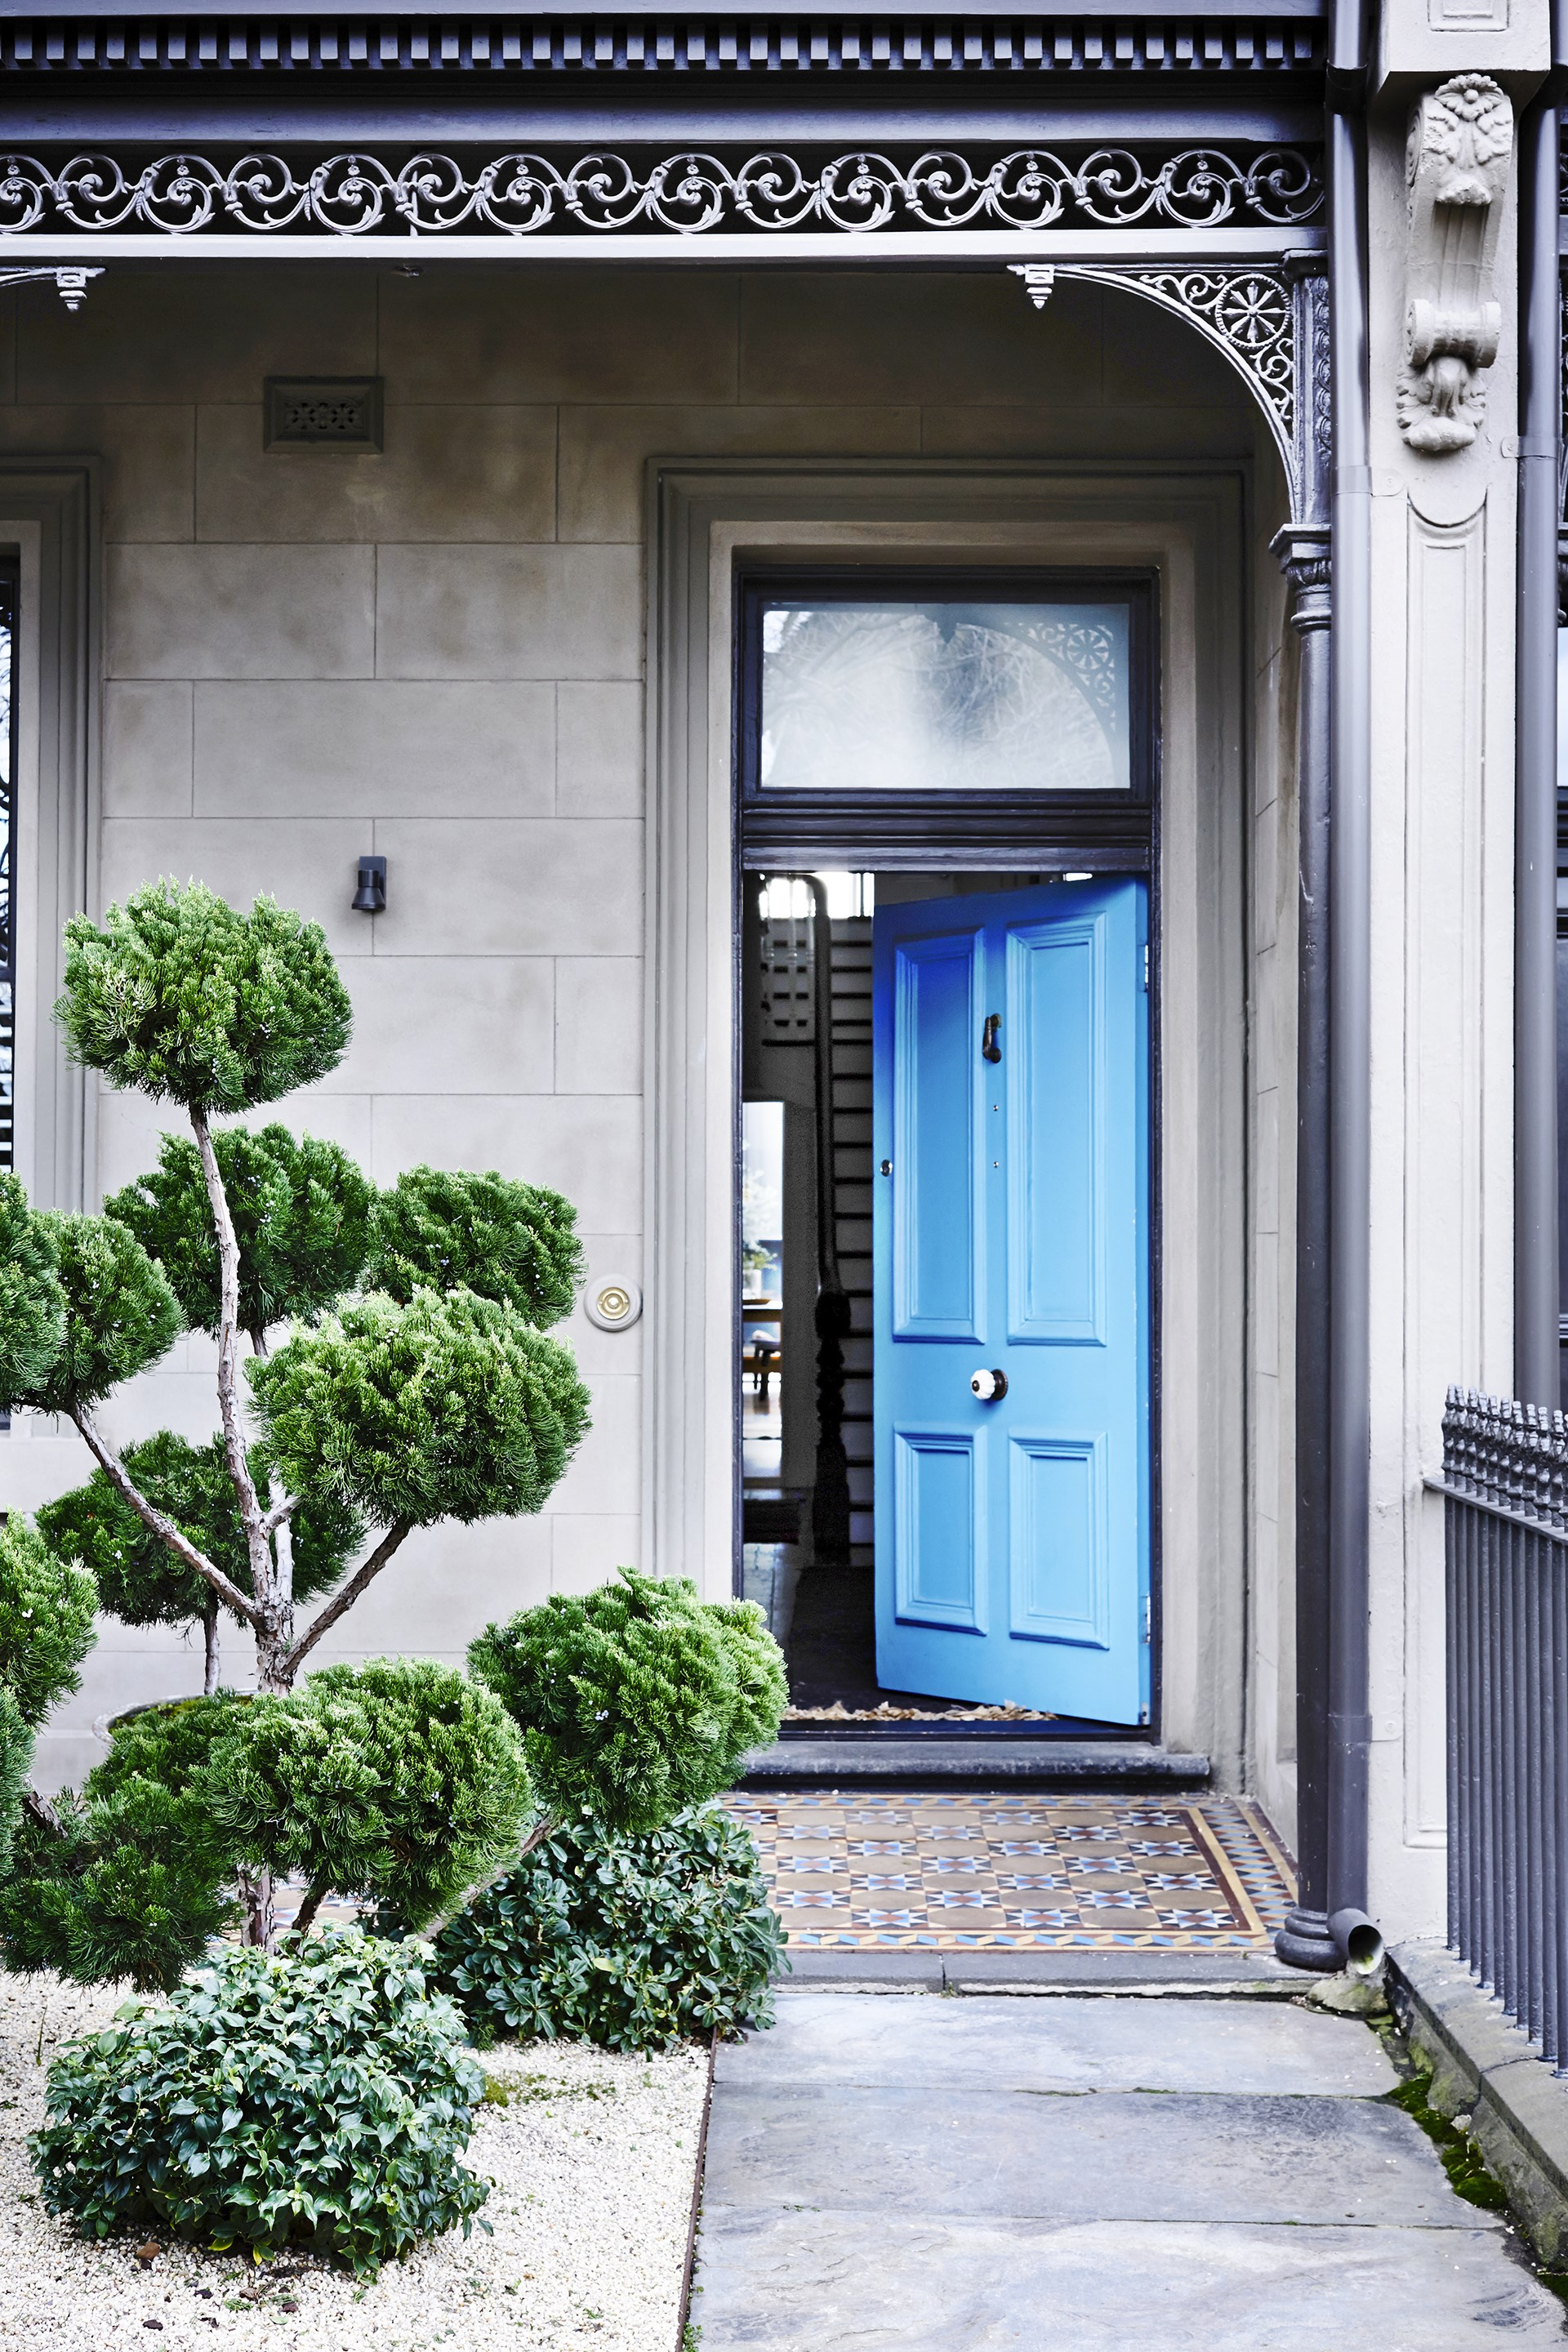 "The elegantly sculpted Chinese juniper and front door painted in [Porter's Paints](http://www.porterspaints.com?utm_campaign=supplier/|target=""_blank"") Westport Blue hint at the design surprises inside."